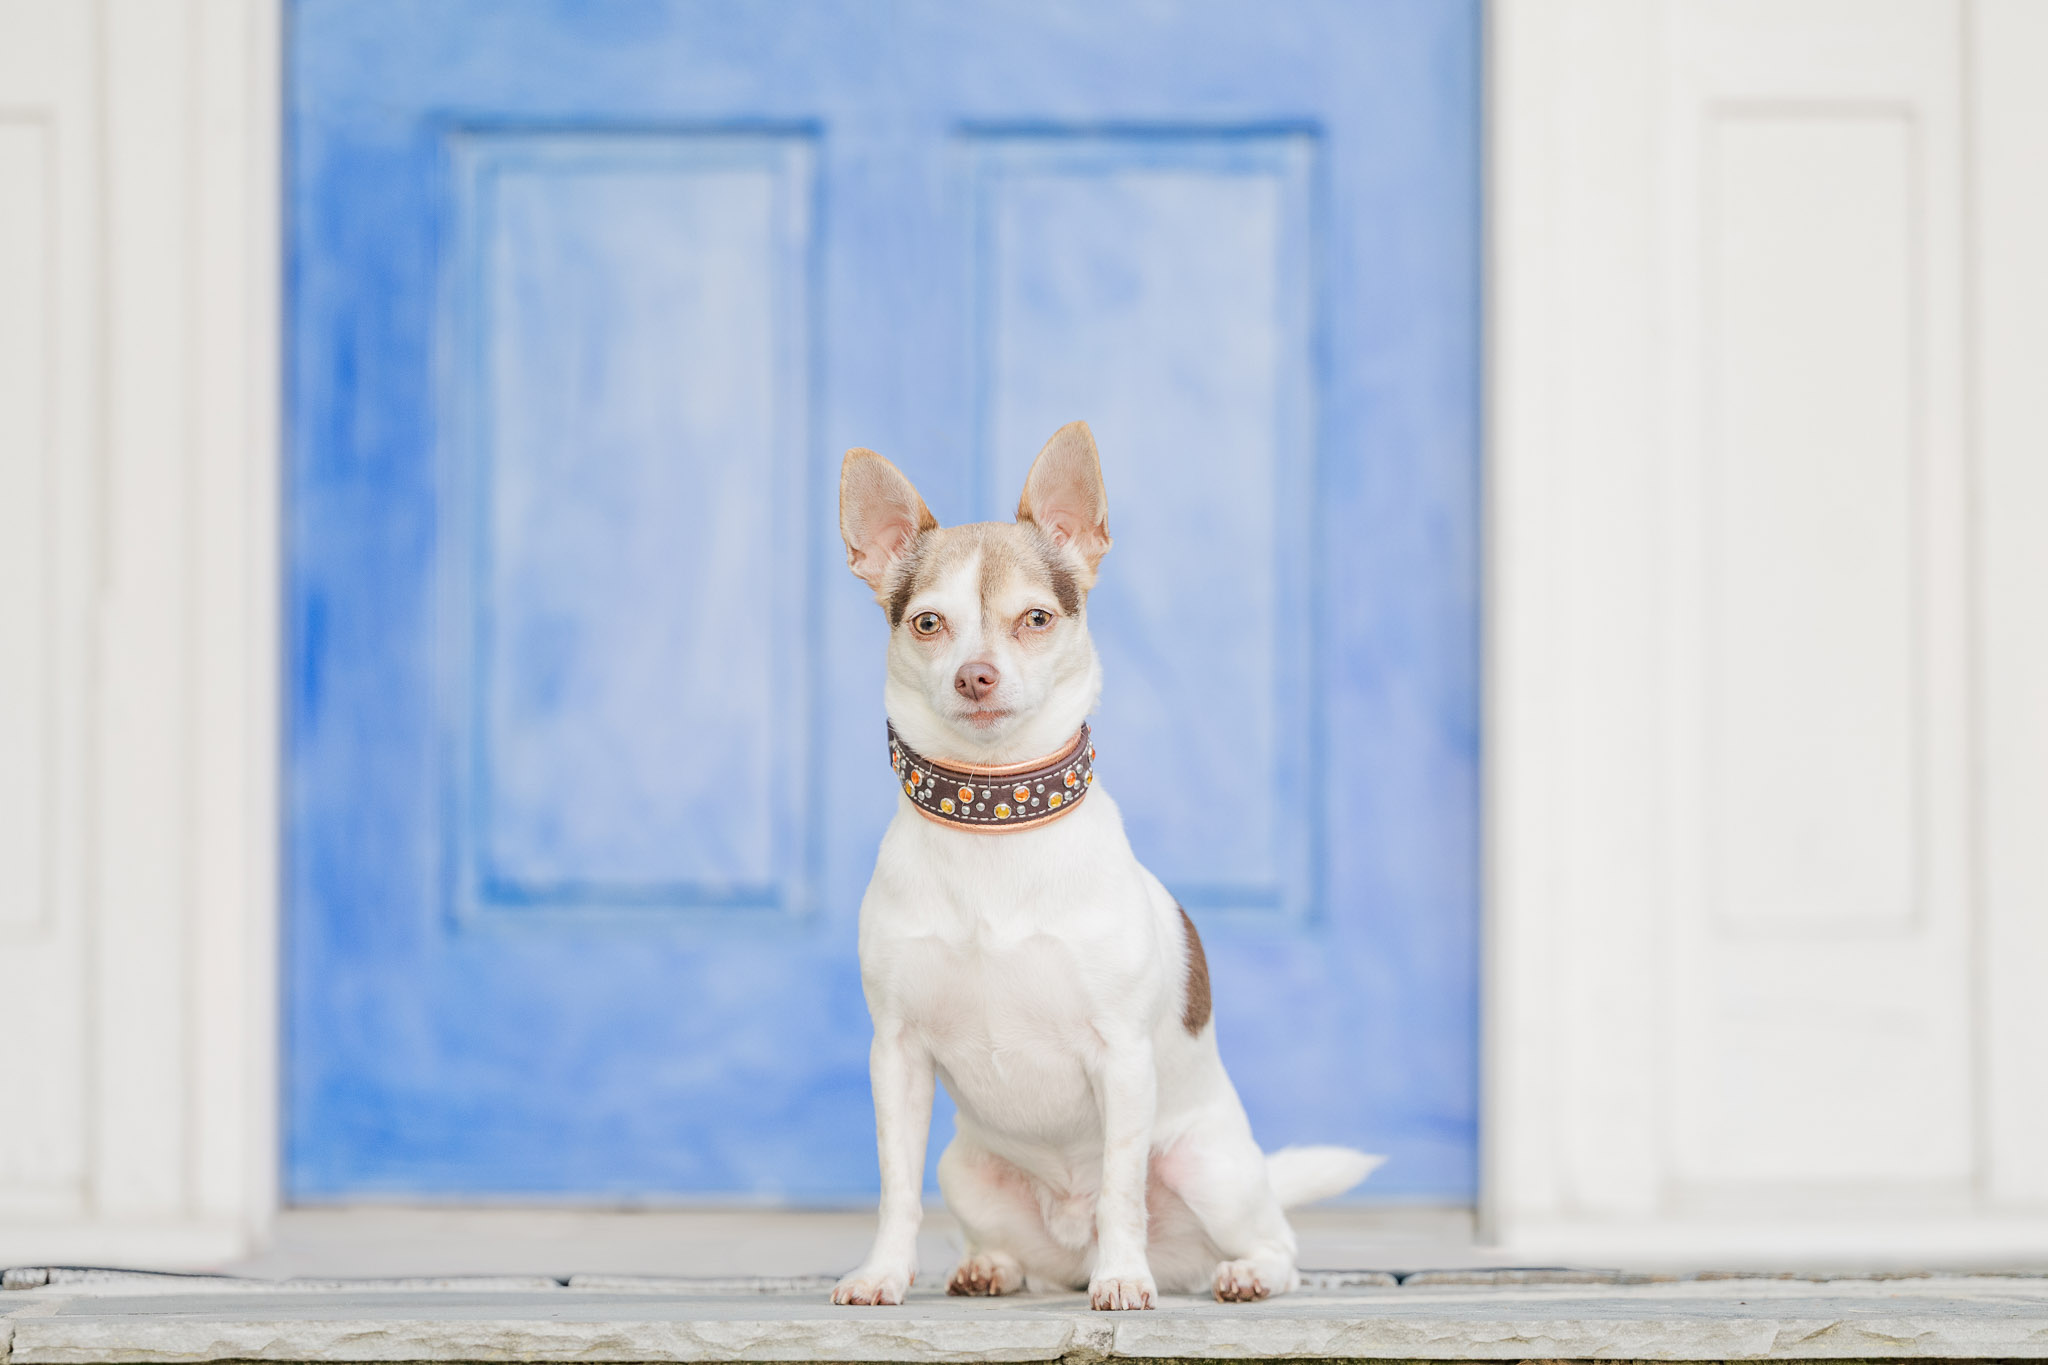 The bold blue door of dog friendly Roswell, Georgia's Raiford Gallery makes a vibrant back drop during a pet photography session.